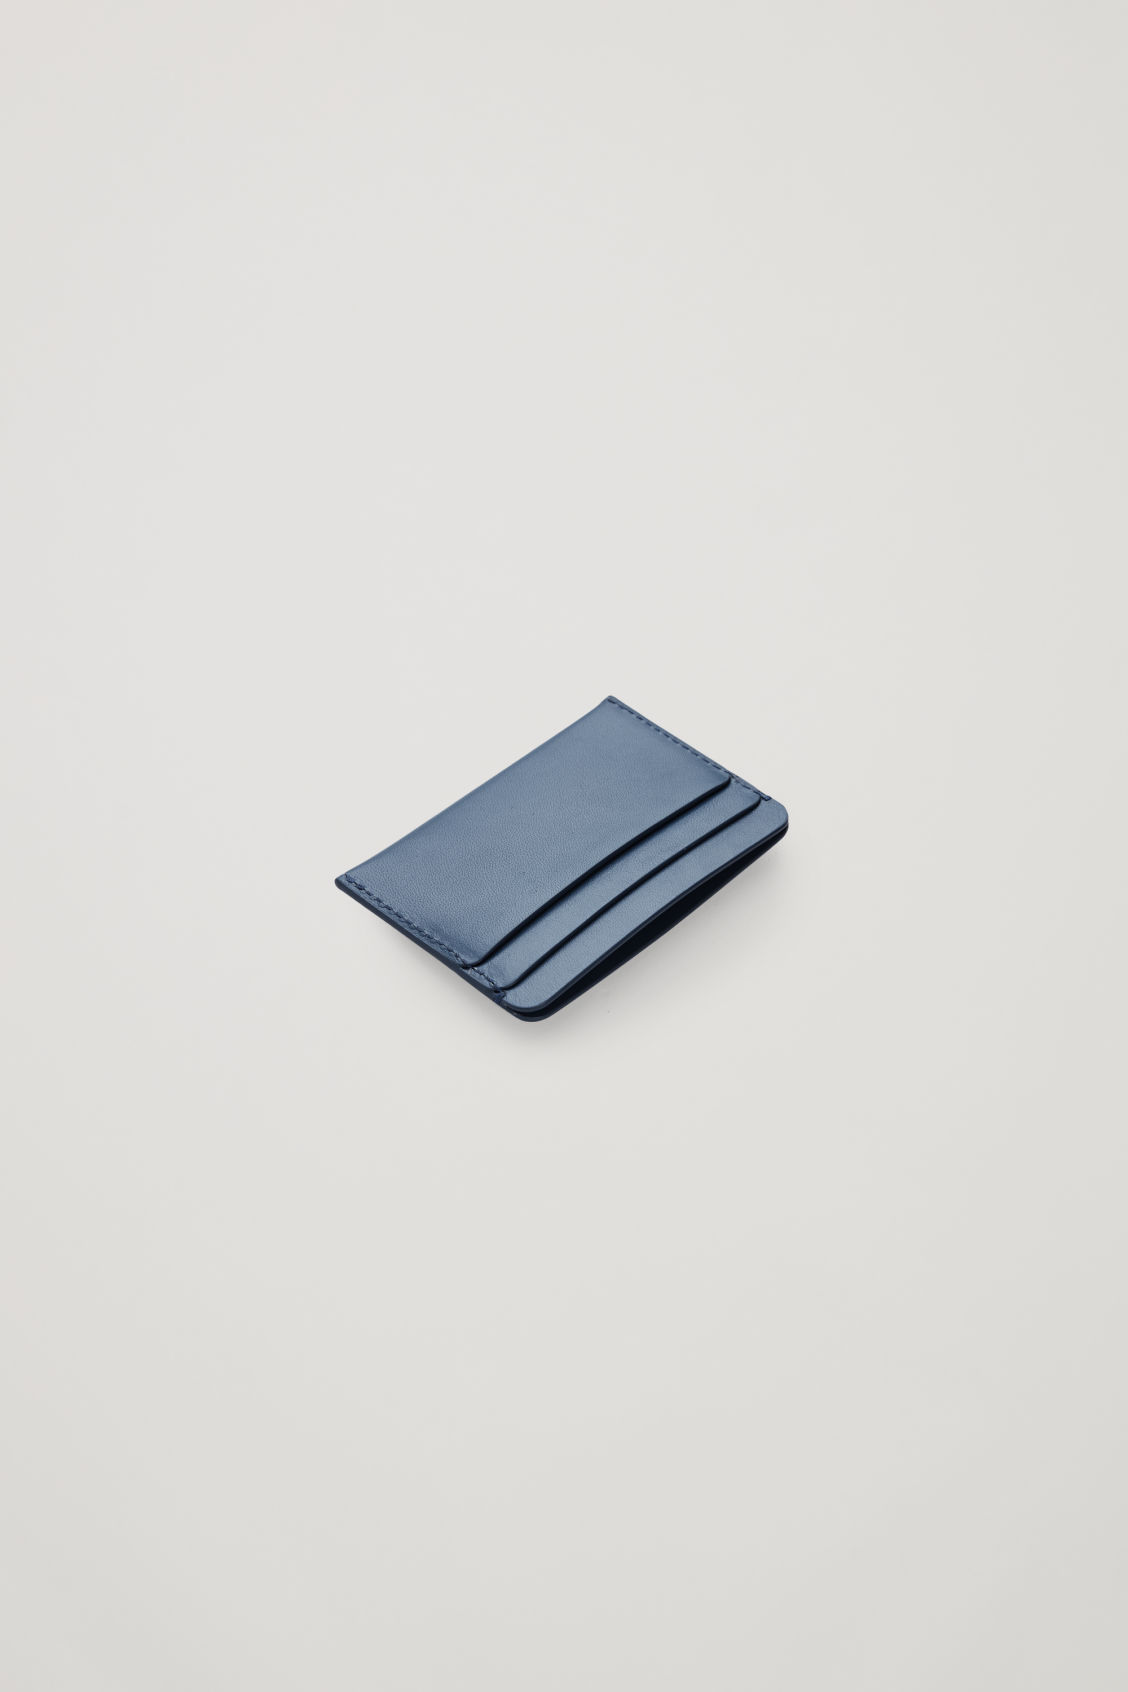 Cos Round-edged Leather Cardholder In Blue